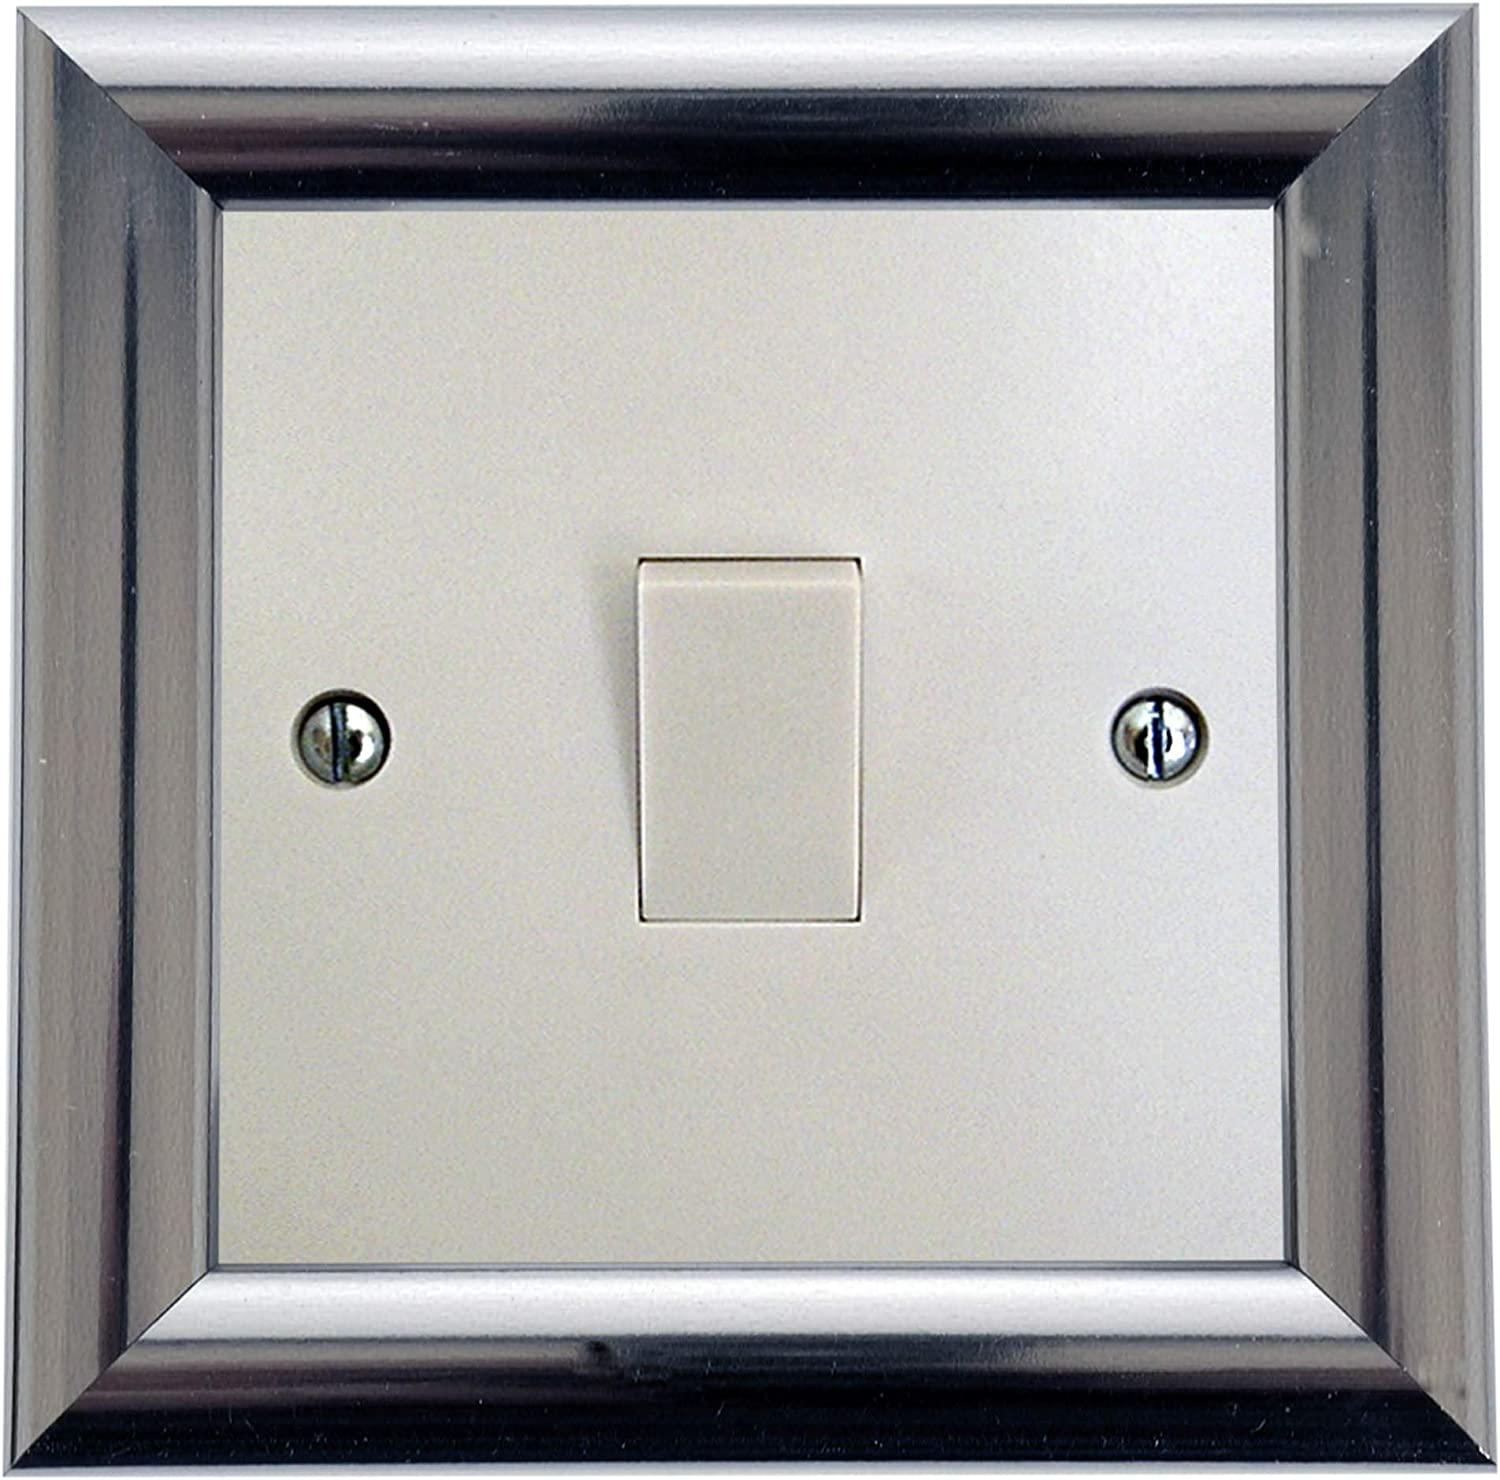 Square Chrome Double Surround Double Light Switch Single Light Switch with LED Support Frame Sub Frames